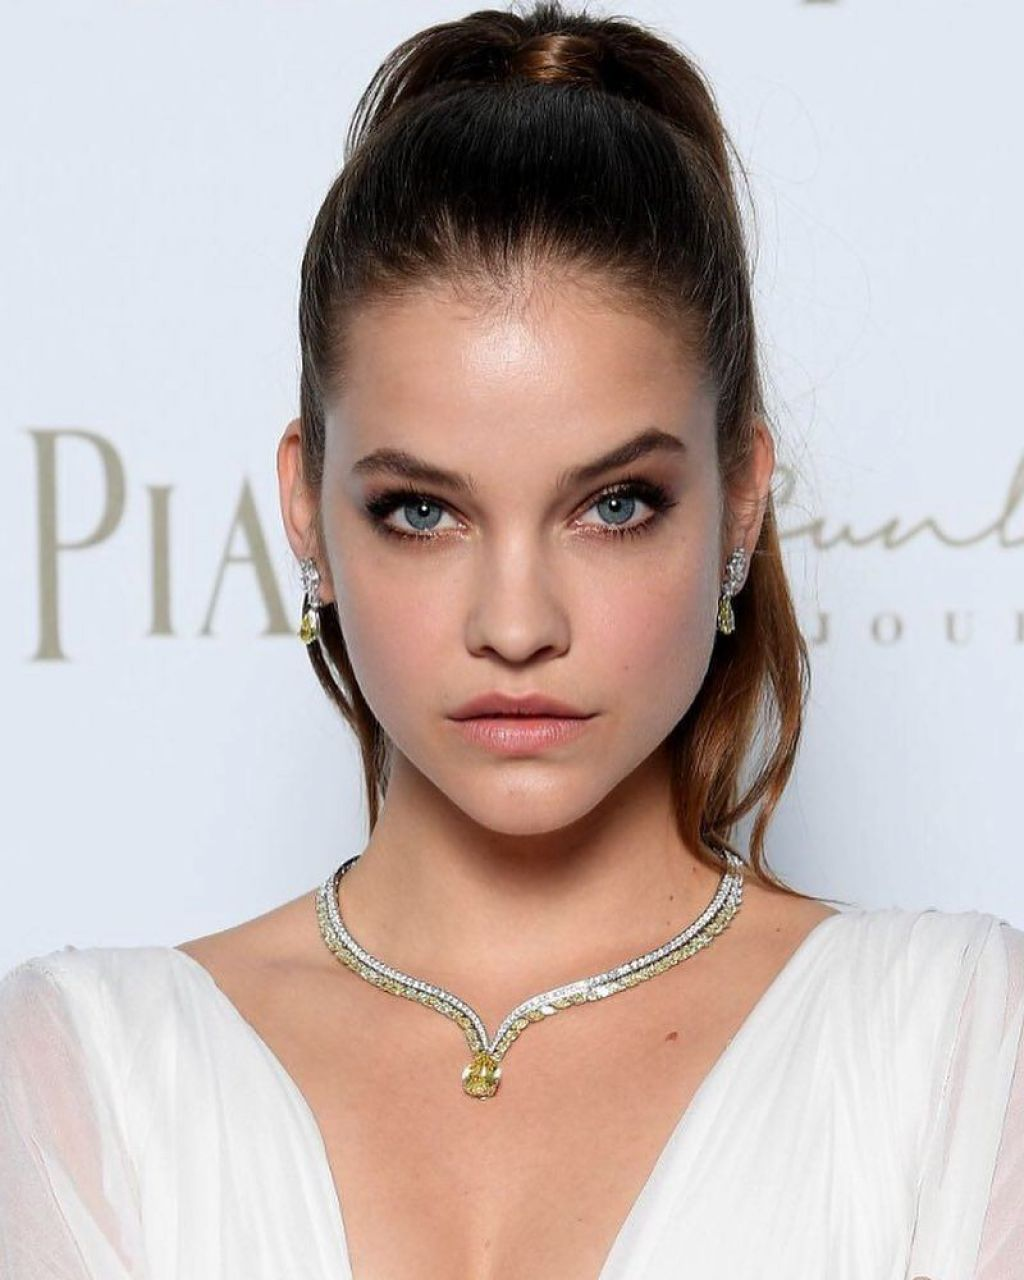 Images Barbara Palvin naked (22 photos), Topless, Sideboobs, Selfie, lingerie 2015